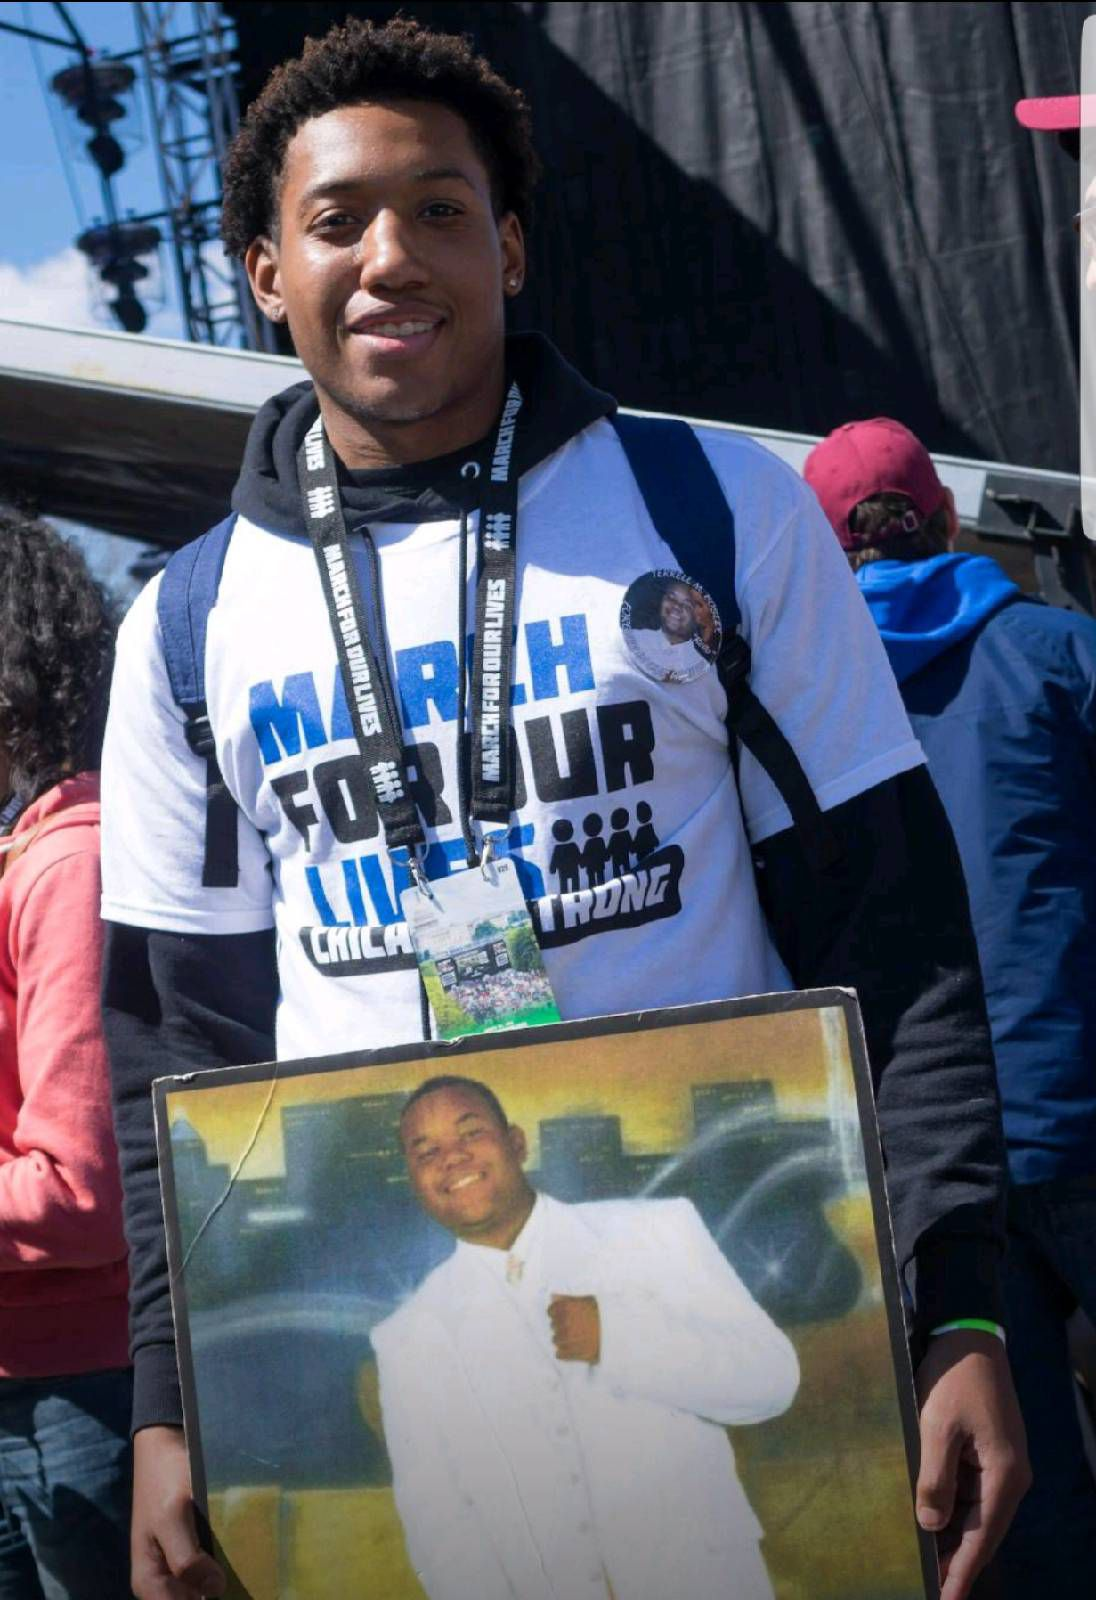 Trevon Bosley at March for Our Lives in Washington, D.C. earlier this year